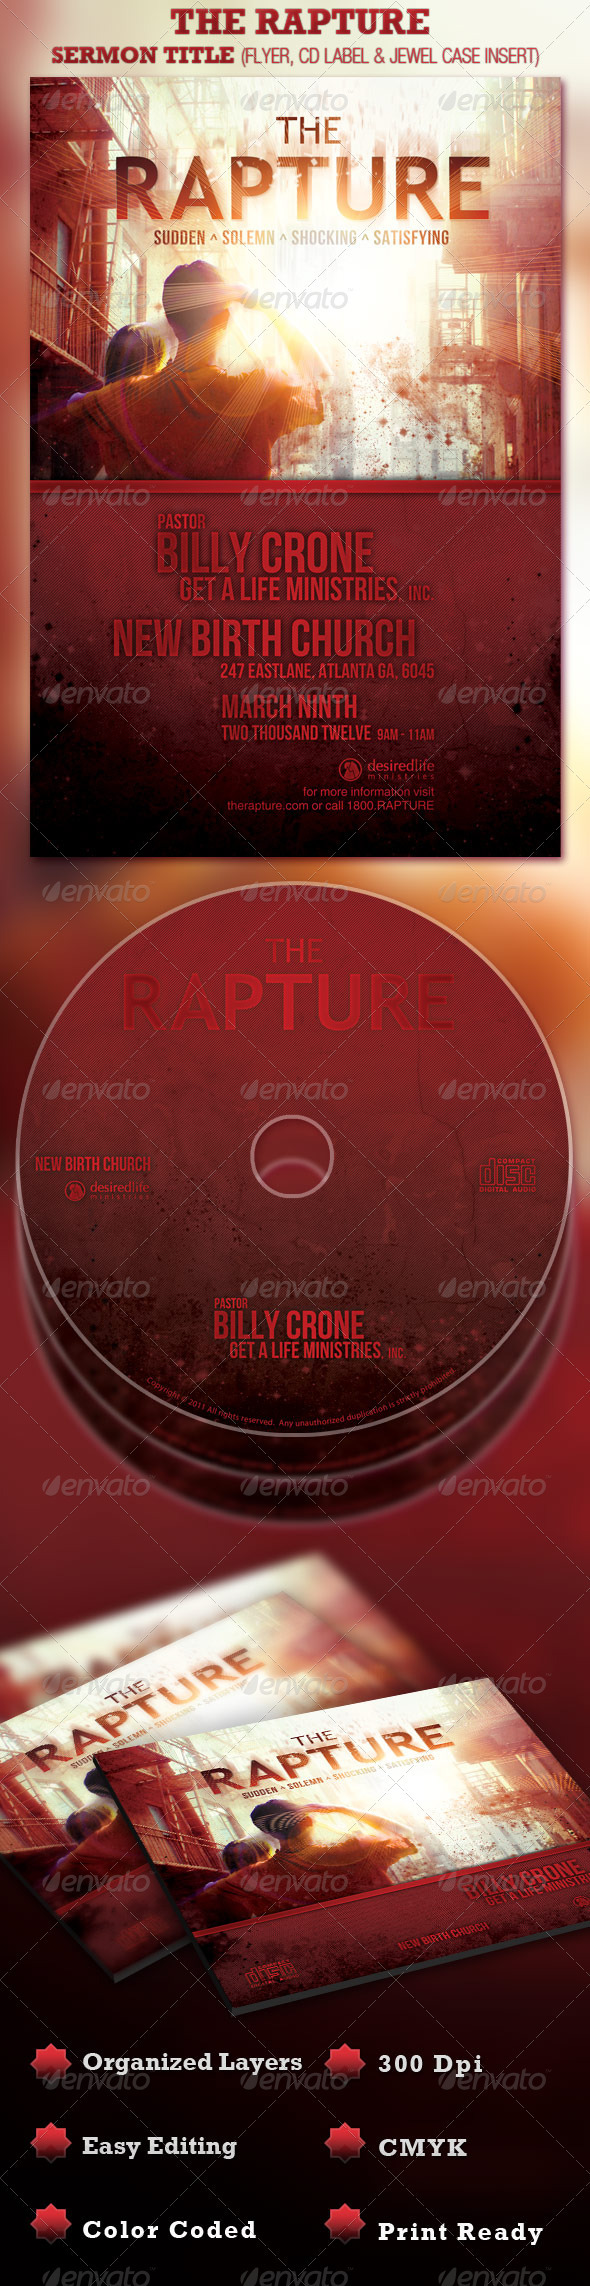 GraphicRiver The Rapture Sermon Title Flyer and CD Template 978095